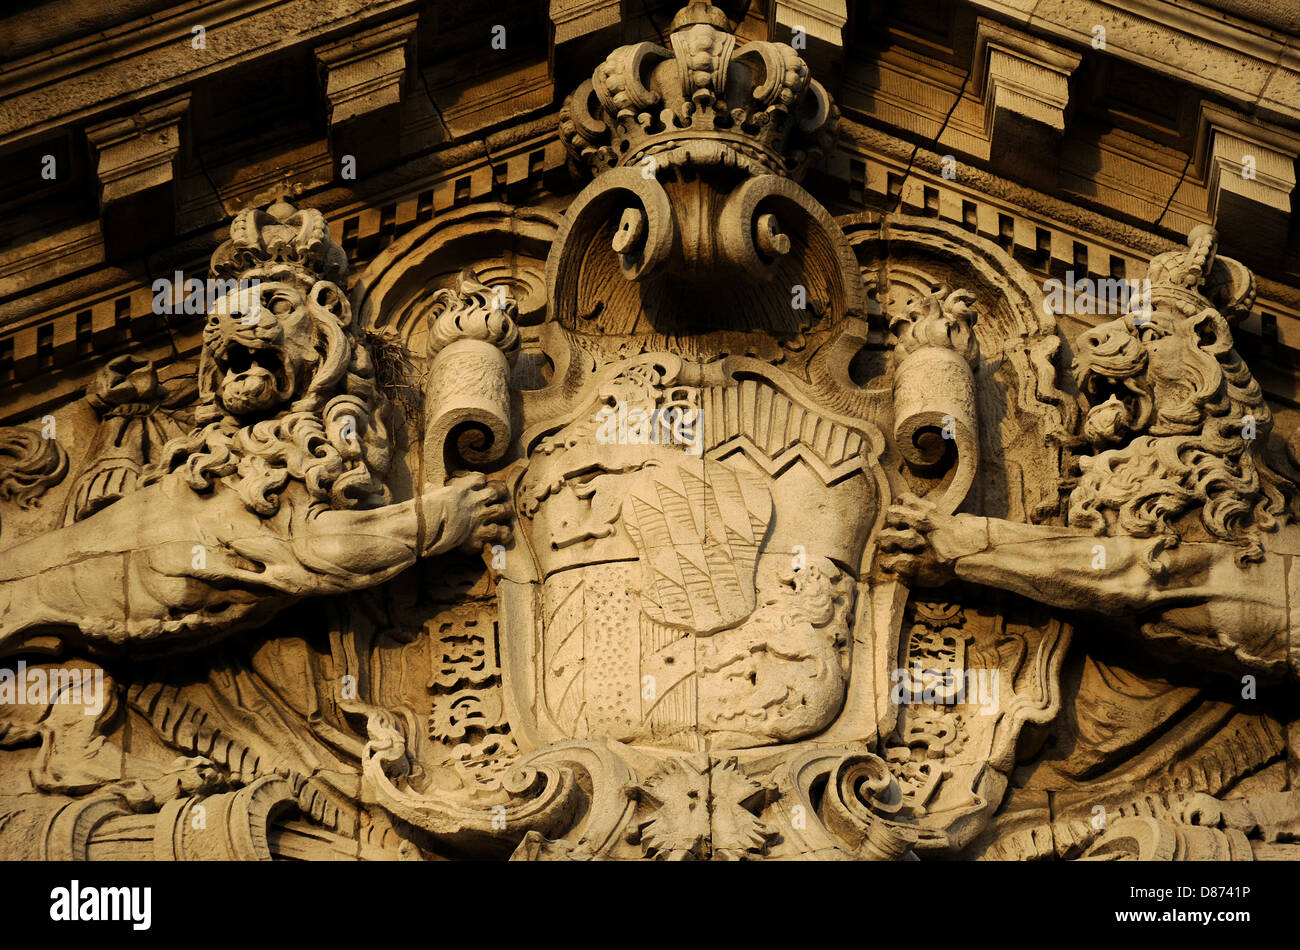 Germany. Munich. The Justizpalast Munich (Palace of Justice). Neo-Baroque style. Facade. Escutcheon. - Stock Image